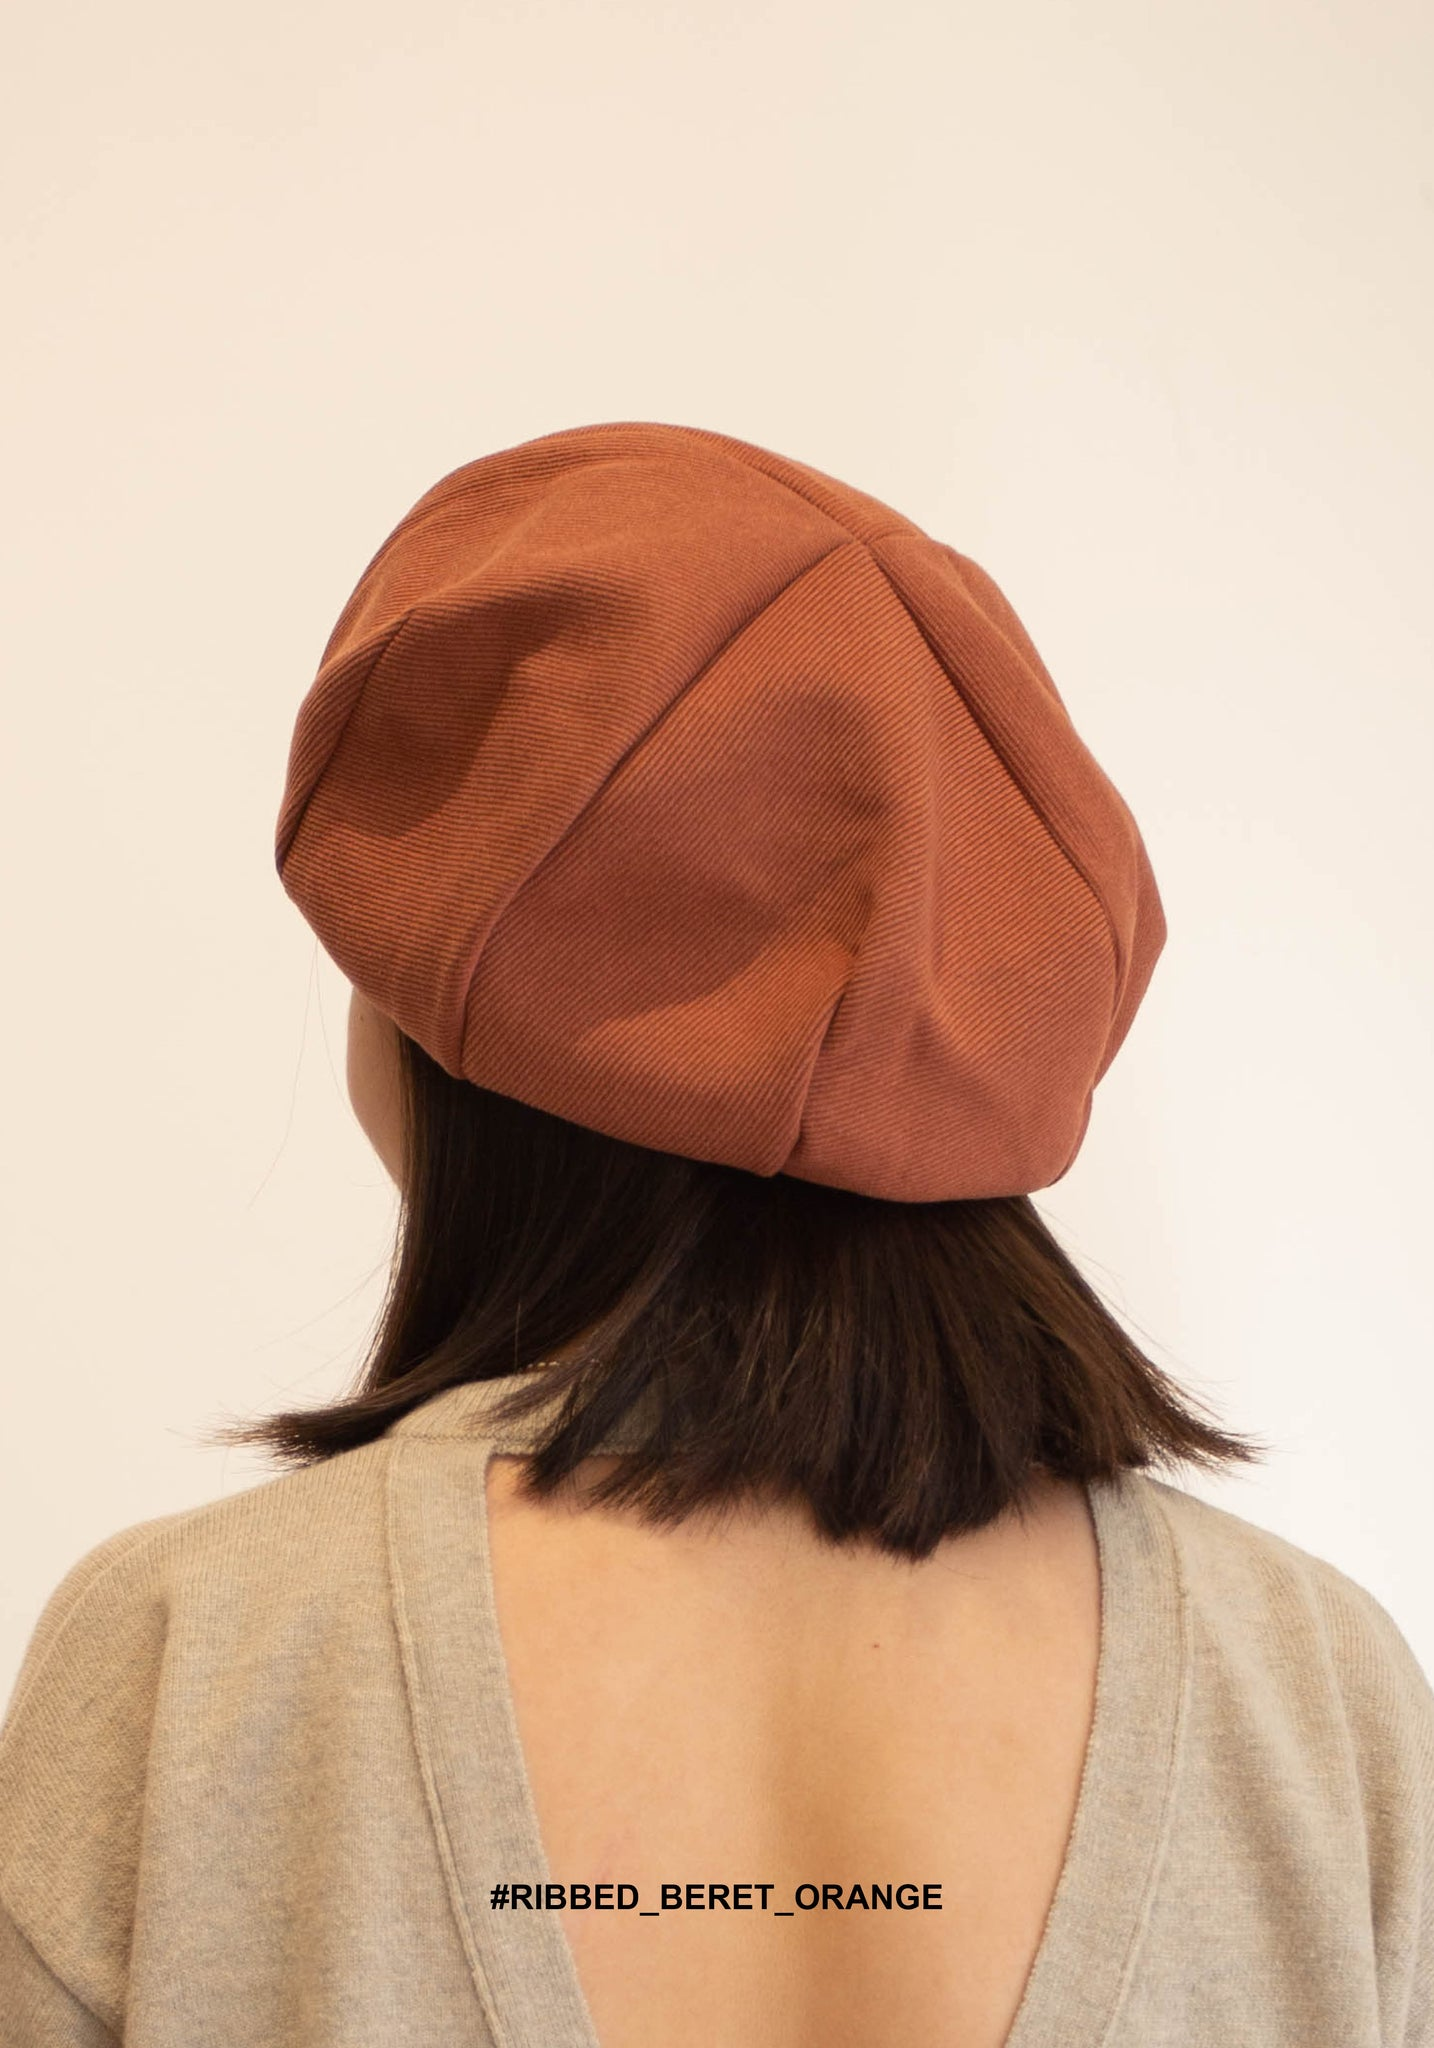 Ribbed Beret Orange - whoami